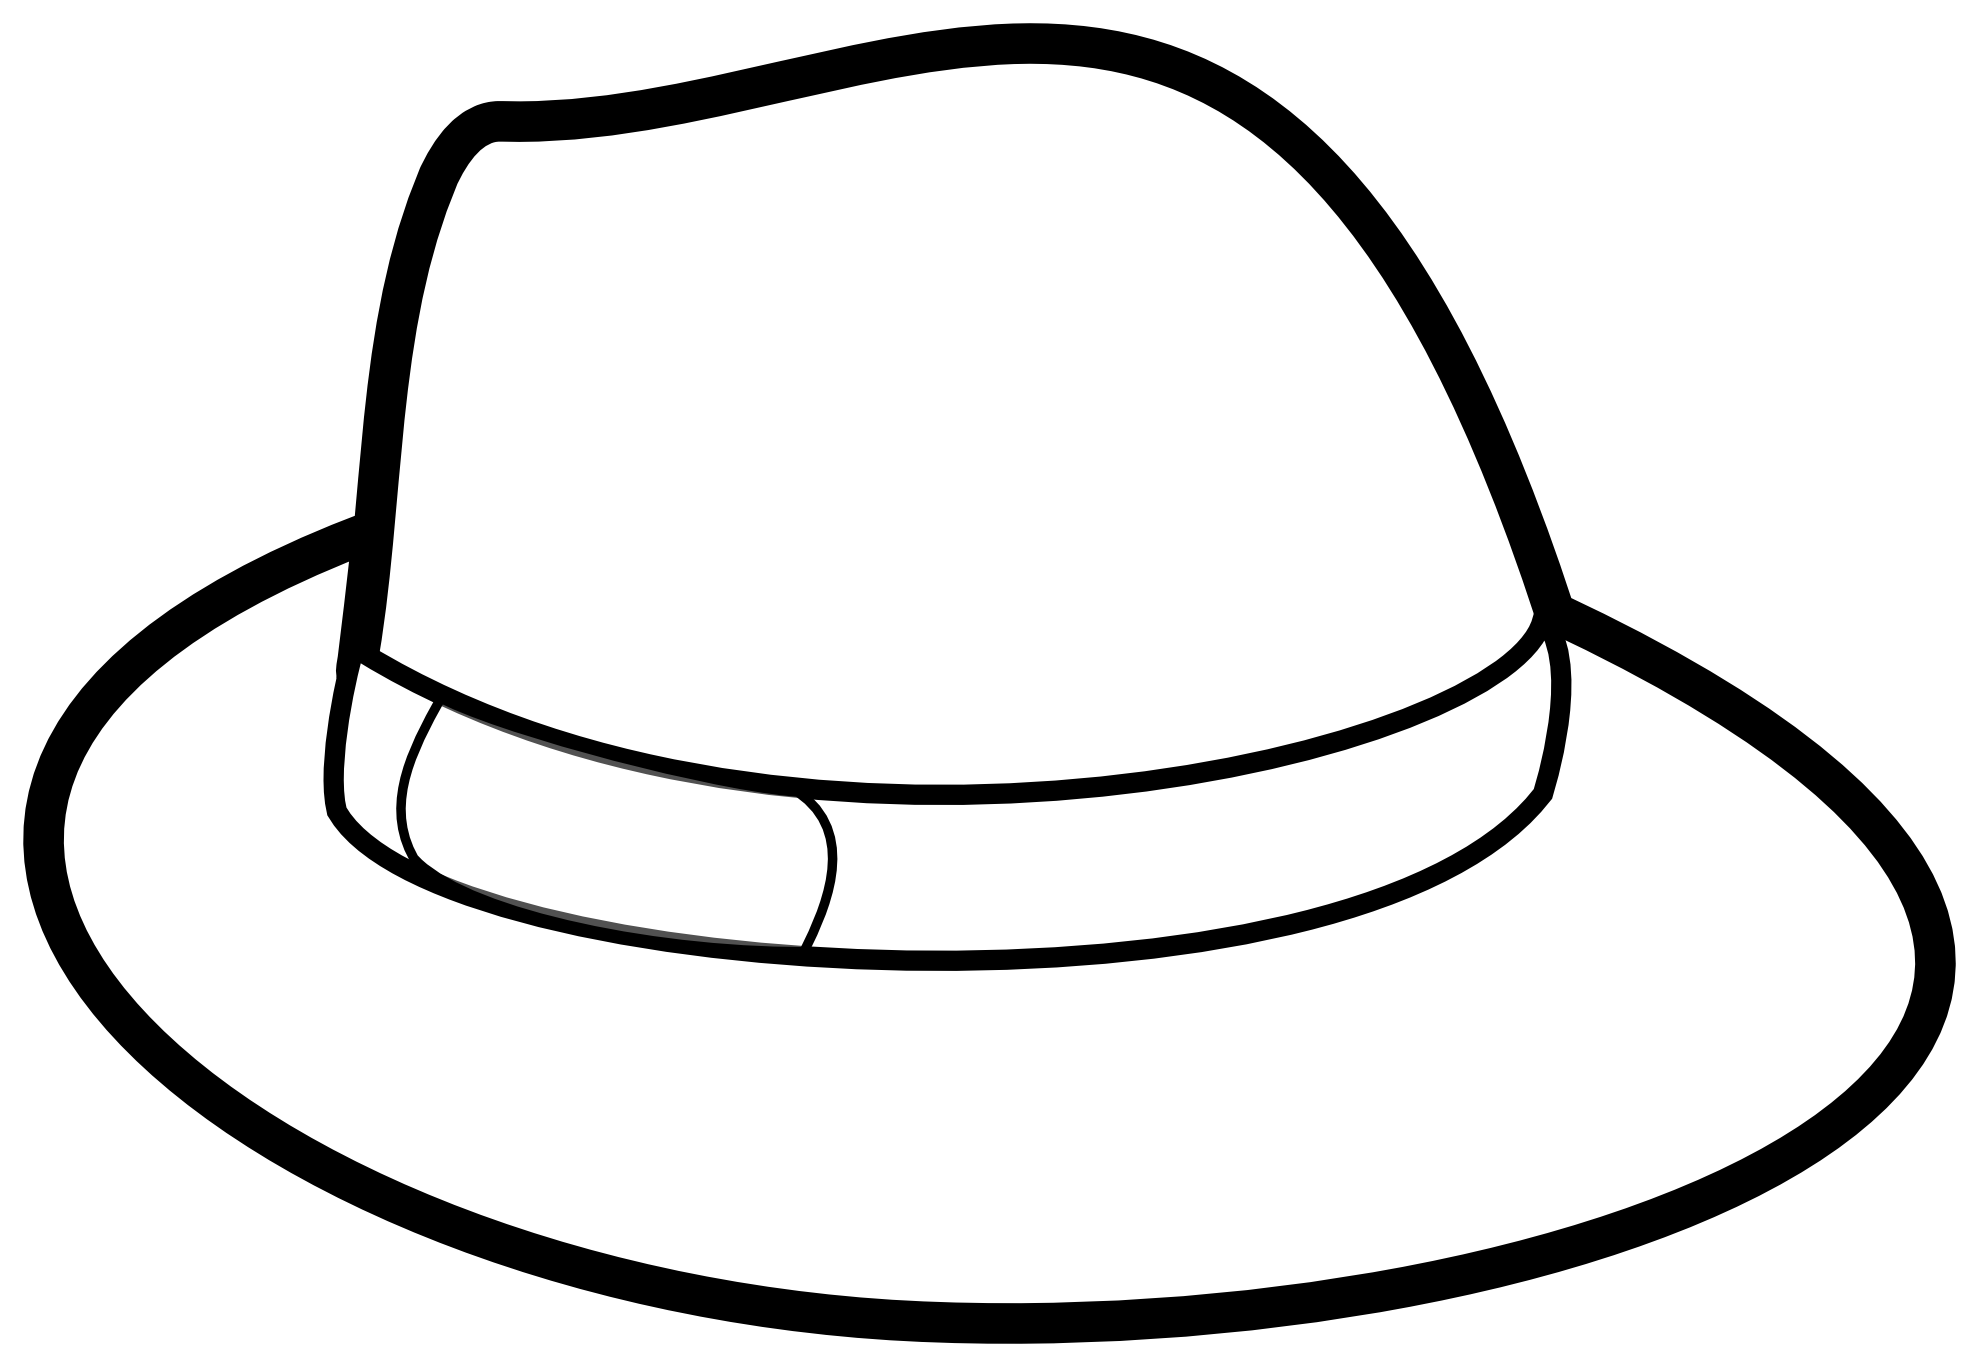 Leprechaun clipart black and white baseball vector royalty free library Cowboy Hat Clipart Black And White | Clipart Panda - Free Clipart Images vector royalty free library